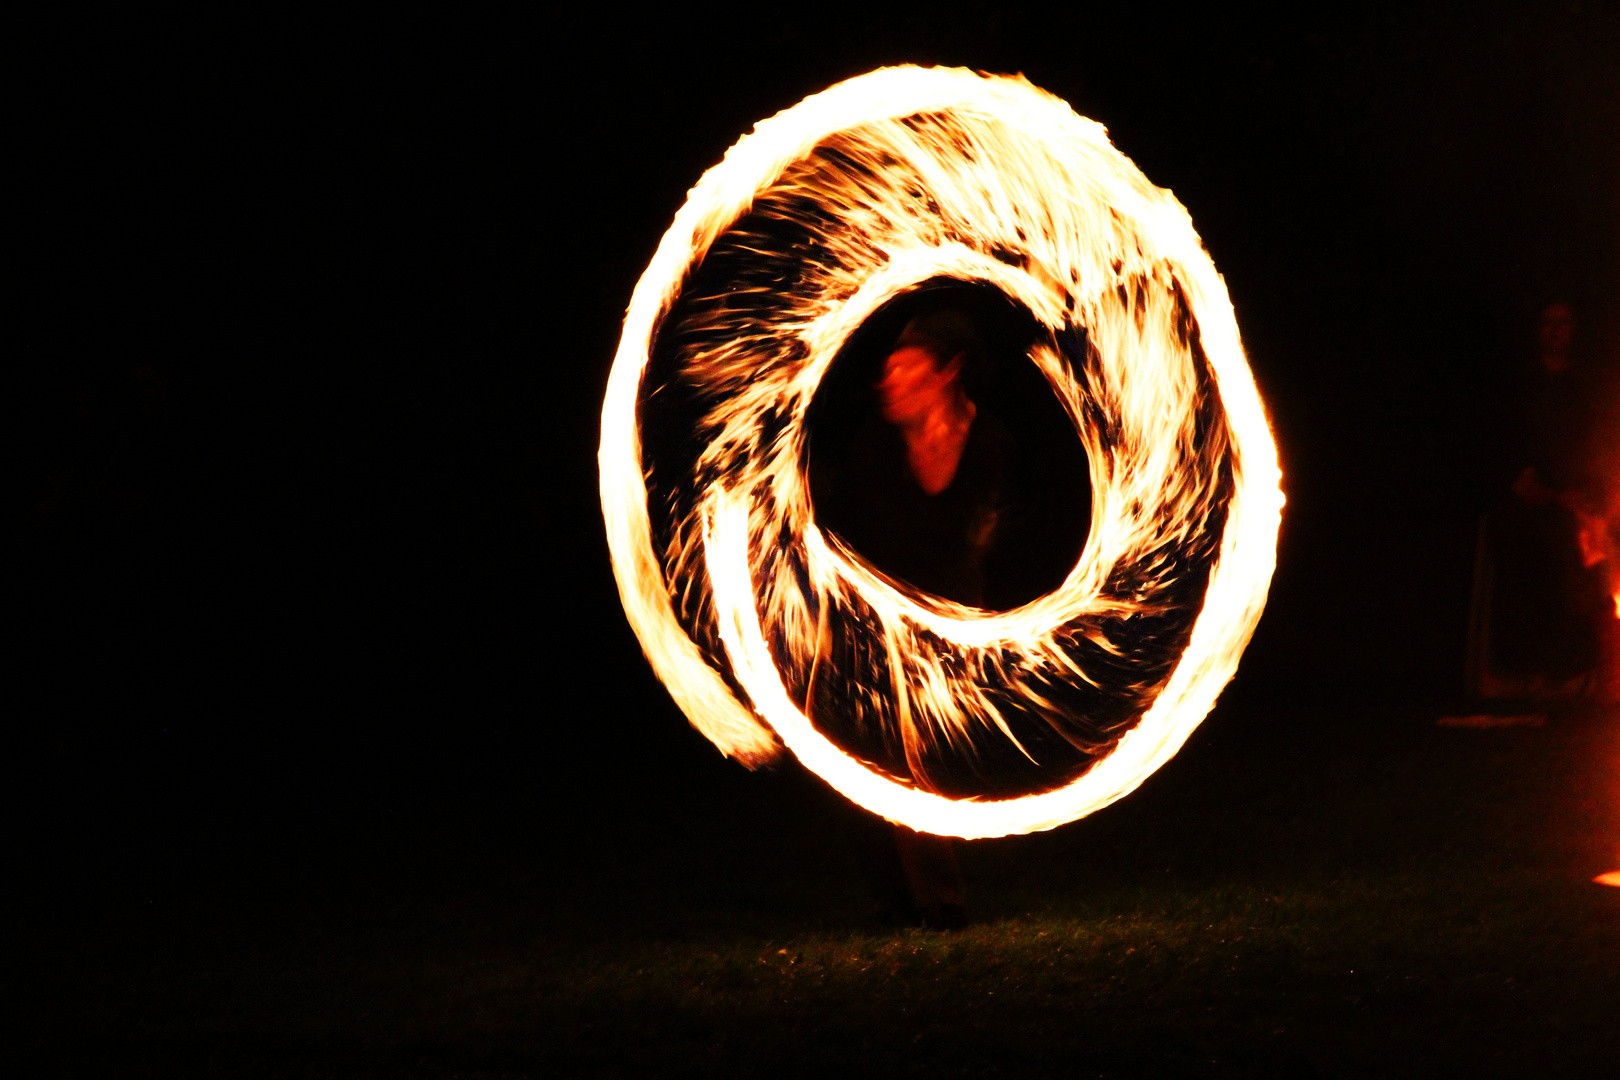 whirl of fire